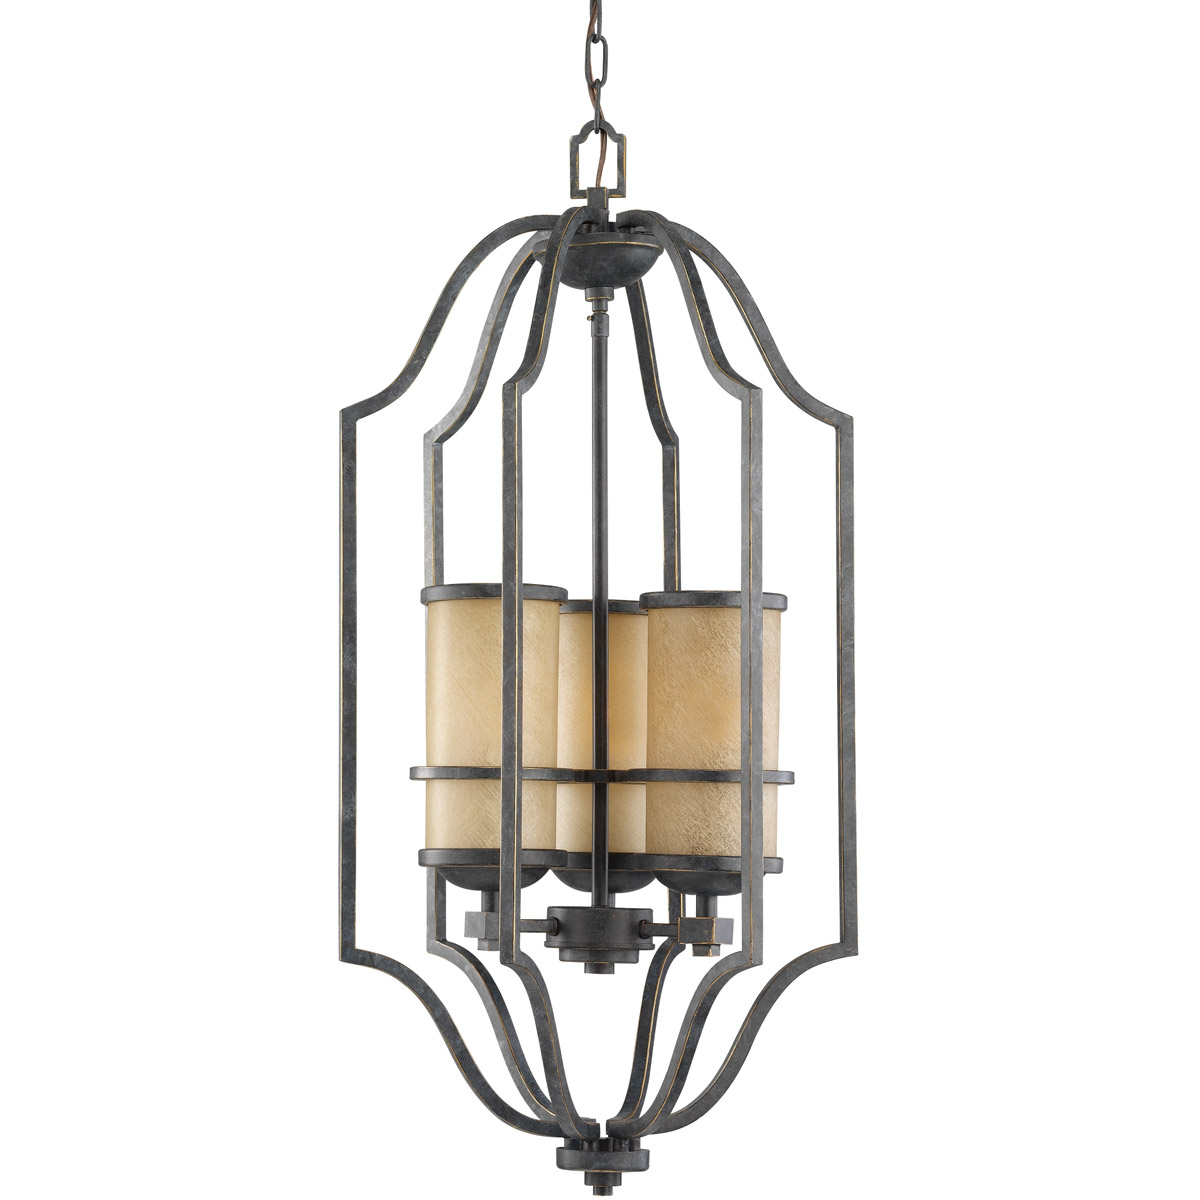 Sea Gull 51521-845 Roslyn 3 Light 16 inch Flemish Bronze Foyer Pendant Ceiling Light in Standard photo